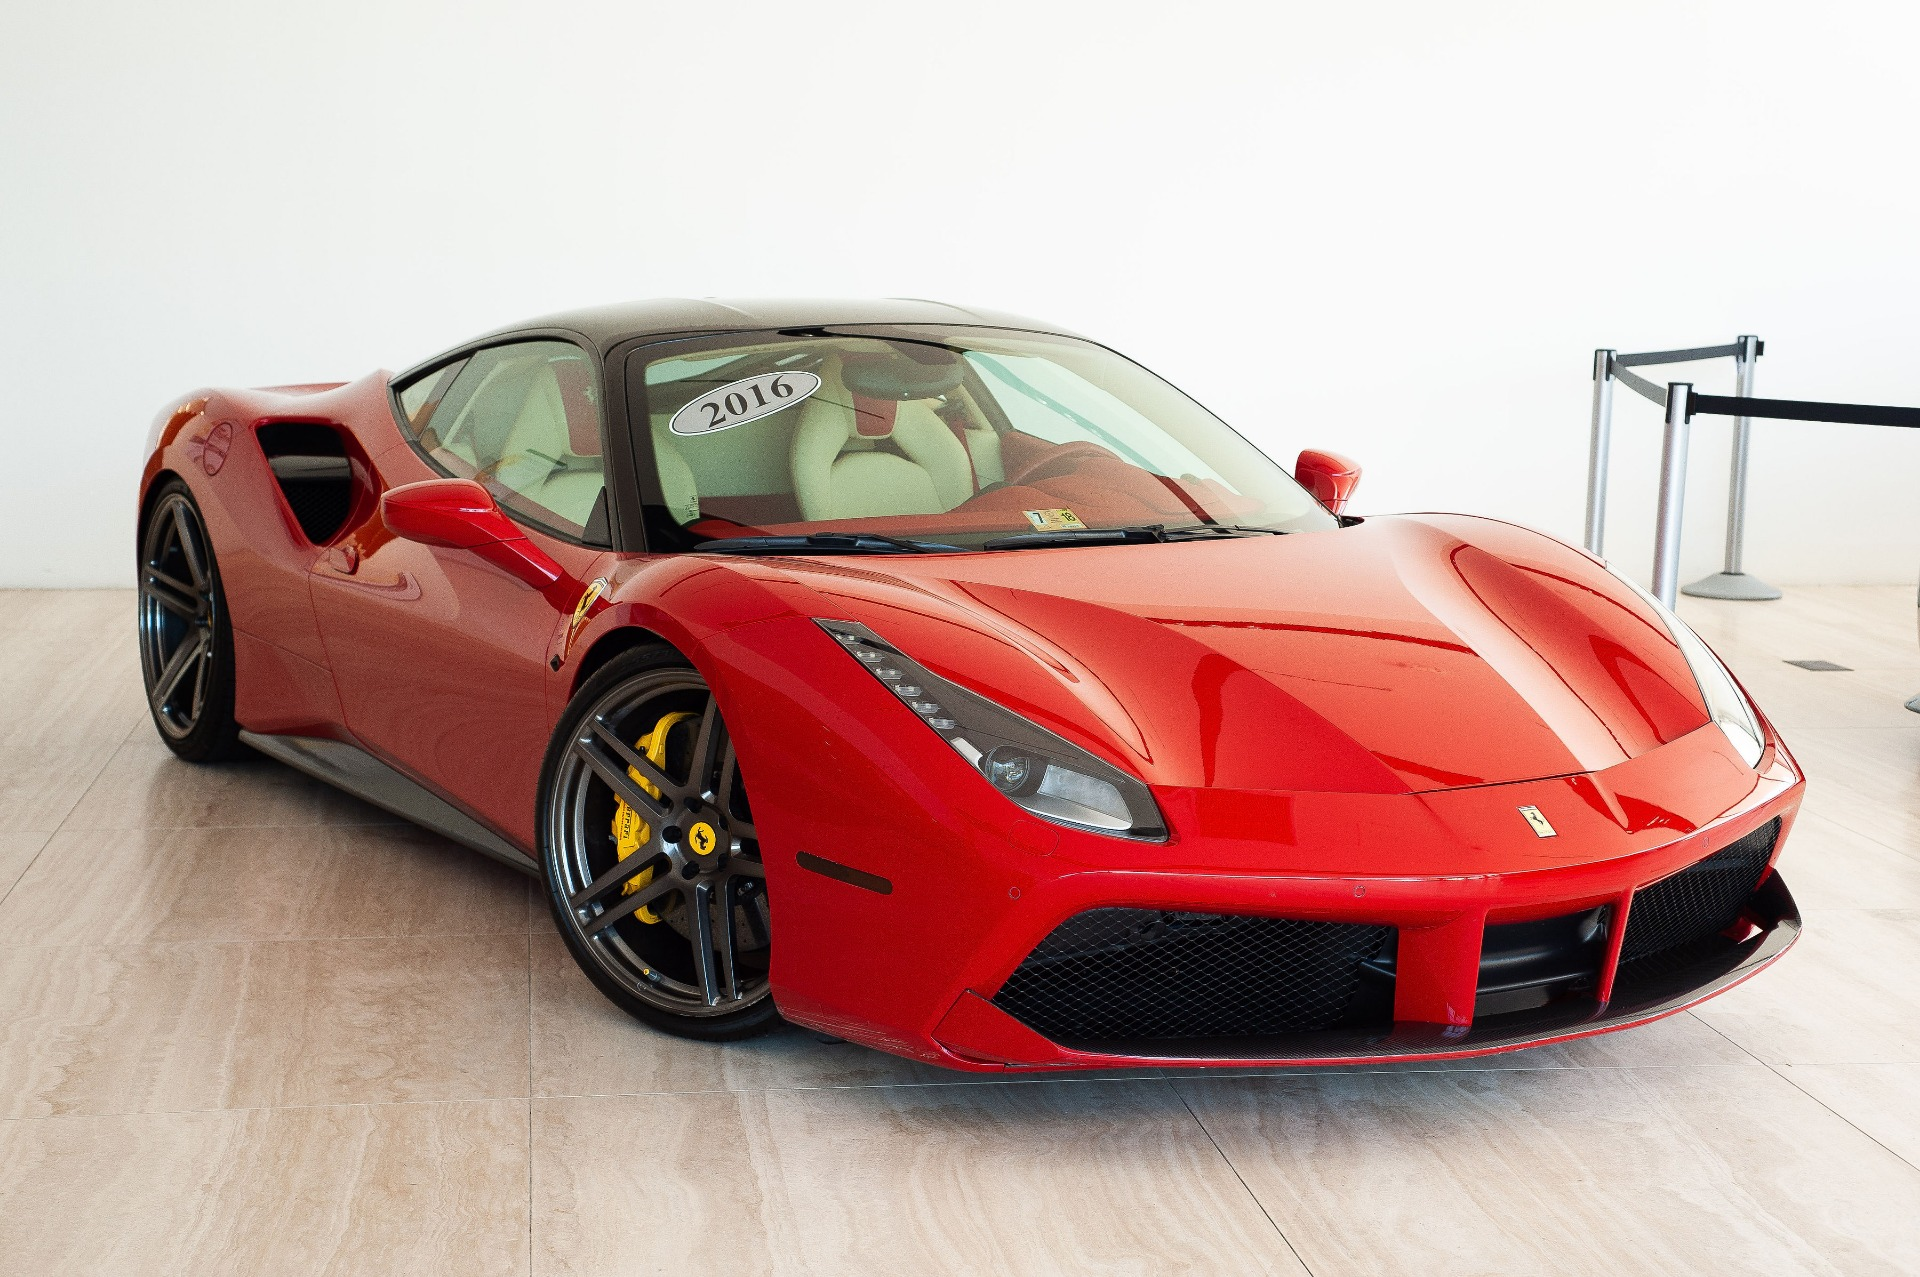 2016 Ferrari 488 Gtb Stock P0216690 For Sale Near Vienna Va Va Ferrari Dealer For Sale In Vienna Va P0216690 Exclusive Automotive Group